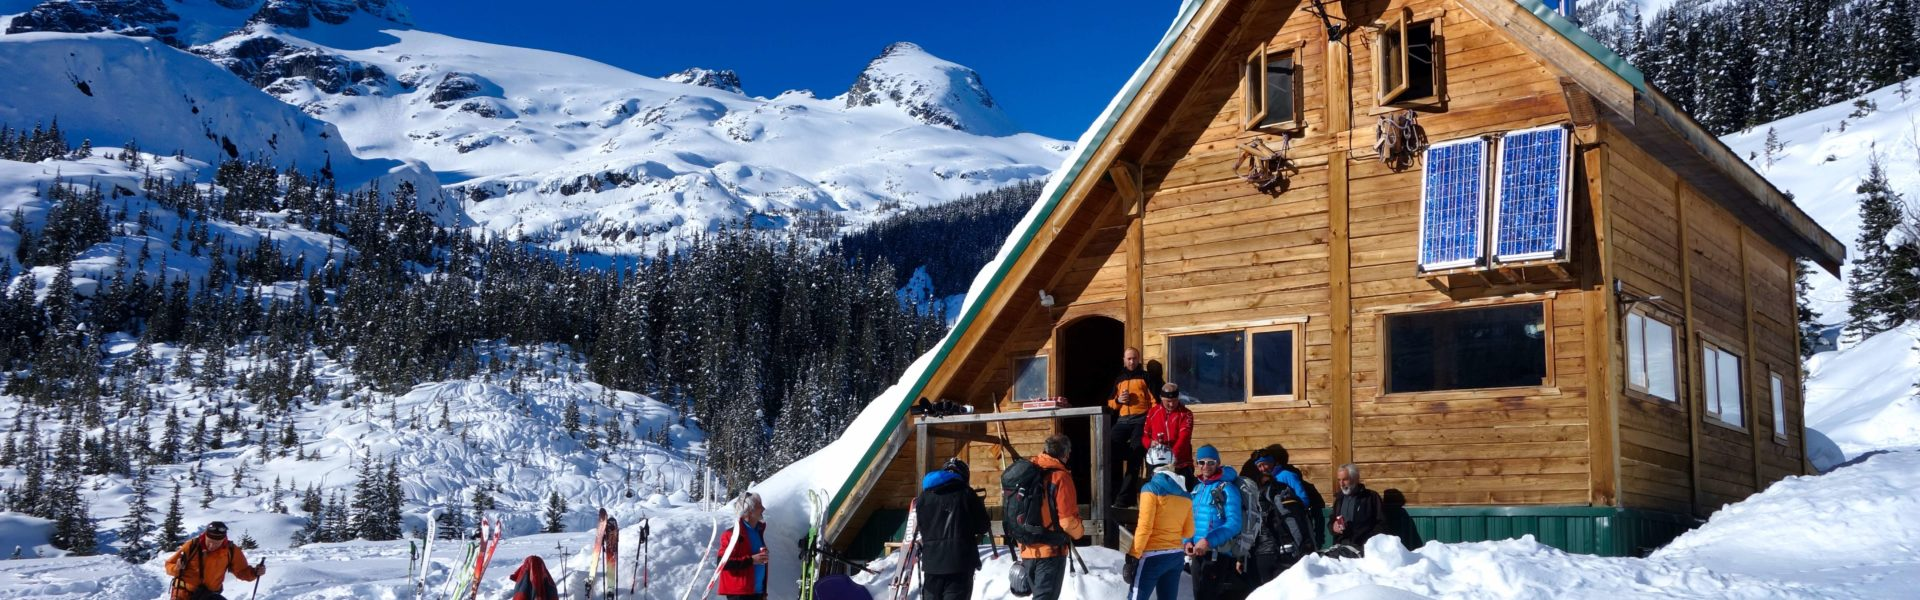 british columbia backcountry ski lodge